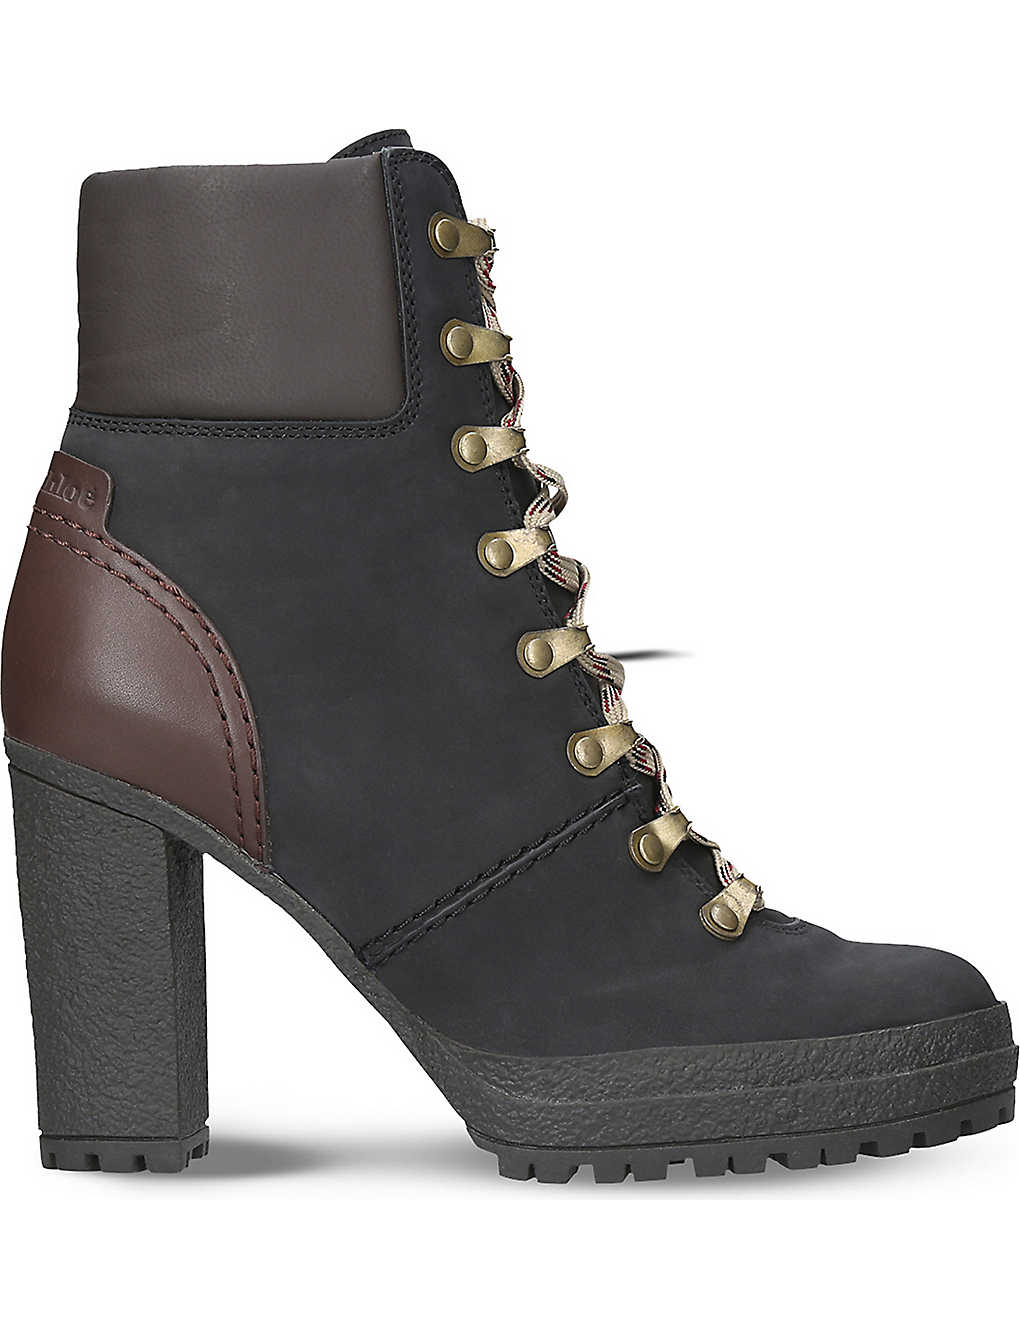 1450738263d4 SEE BY CHLOE - Eileen heeled leather hiking boots